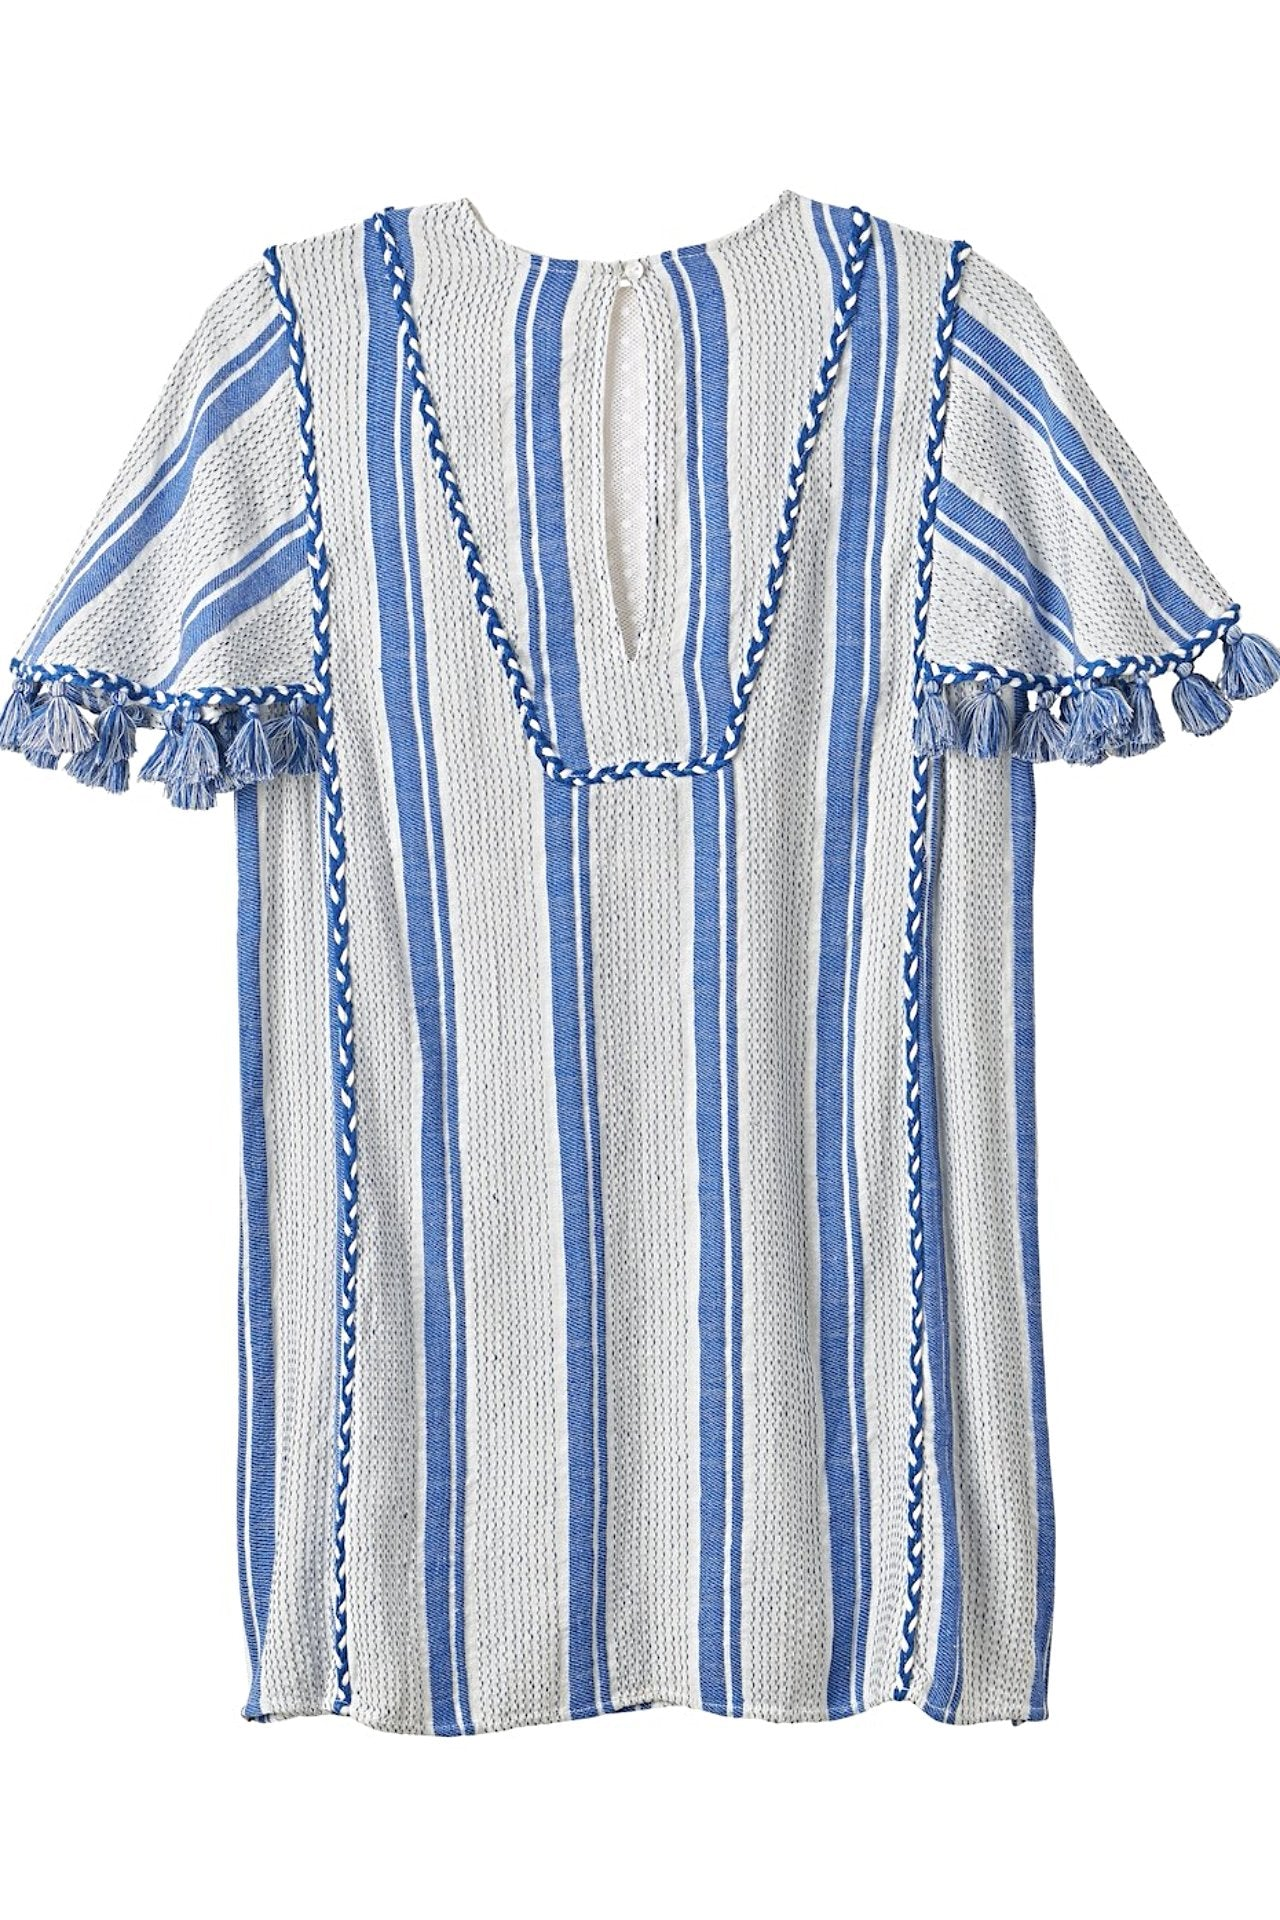 KRISTEN Lace Insert Stripe Flutter Dress with Tassels